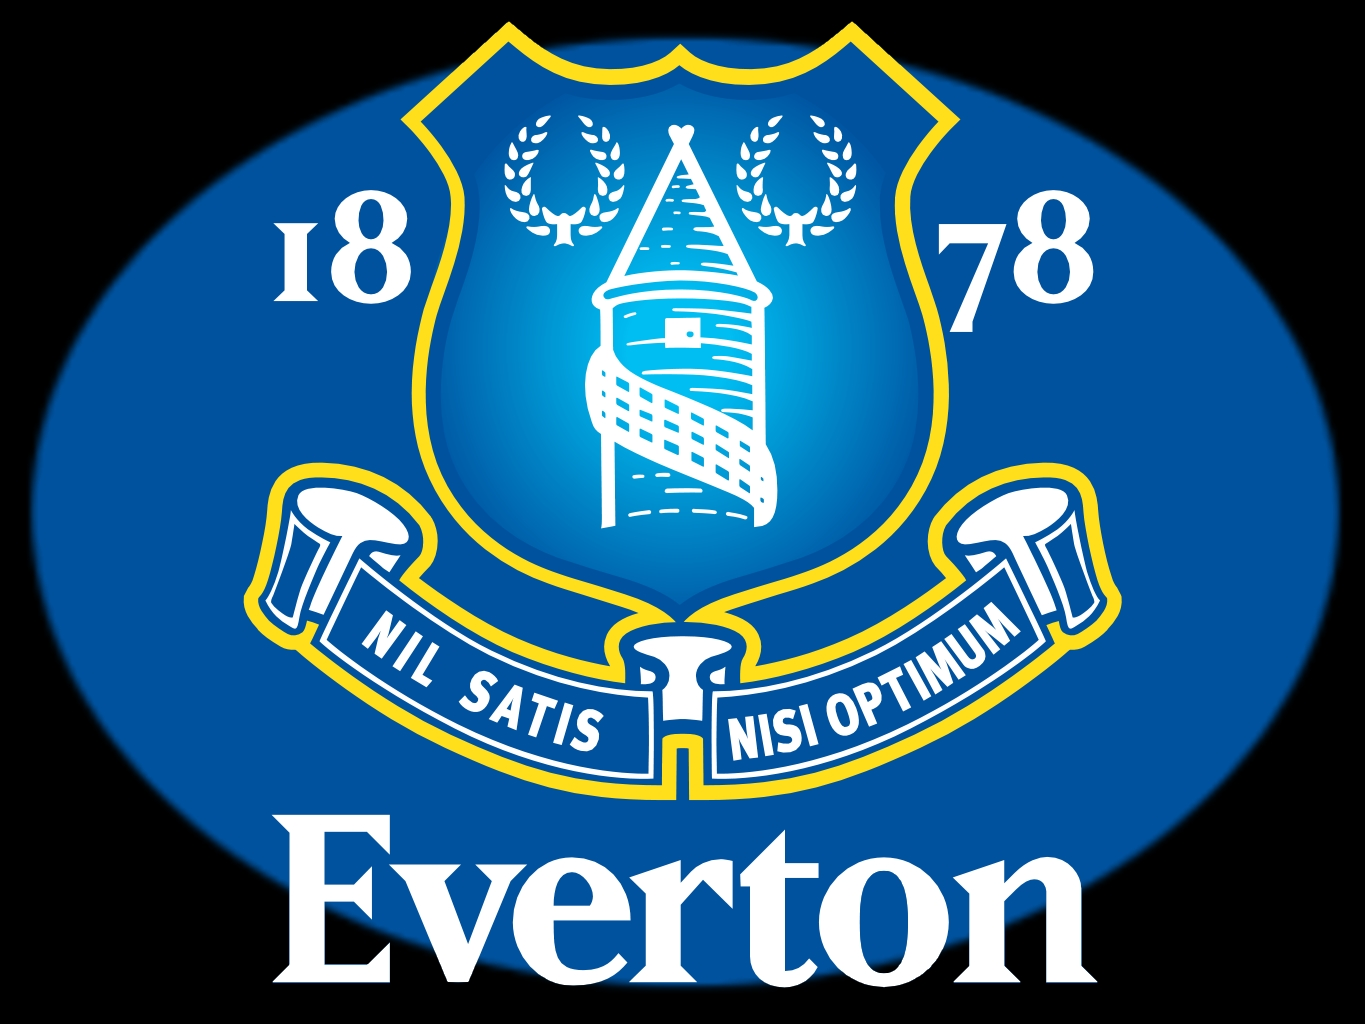 Everton fc celebrity supporters